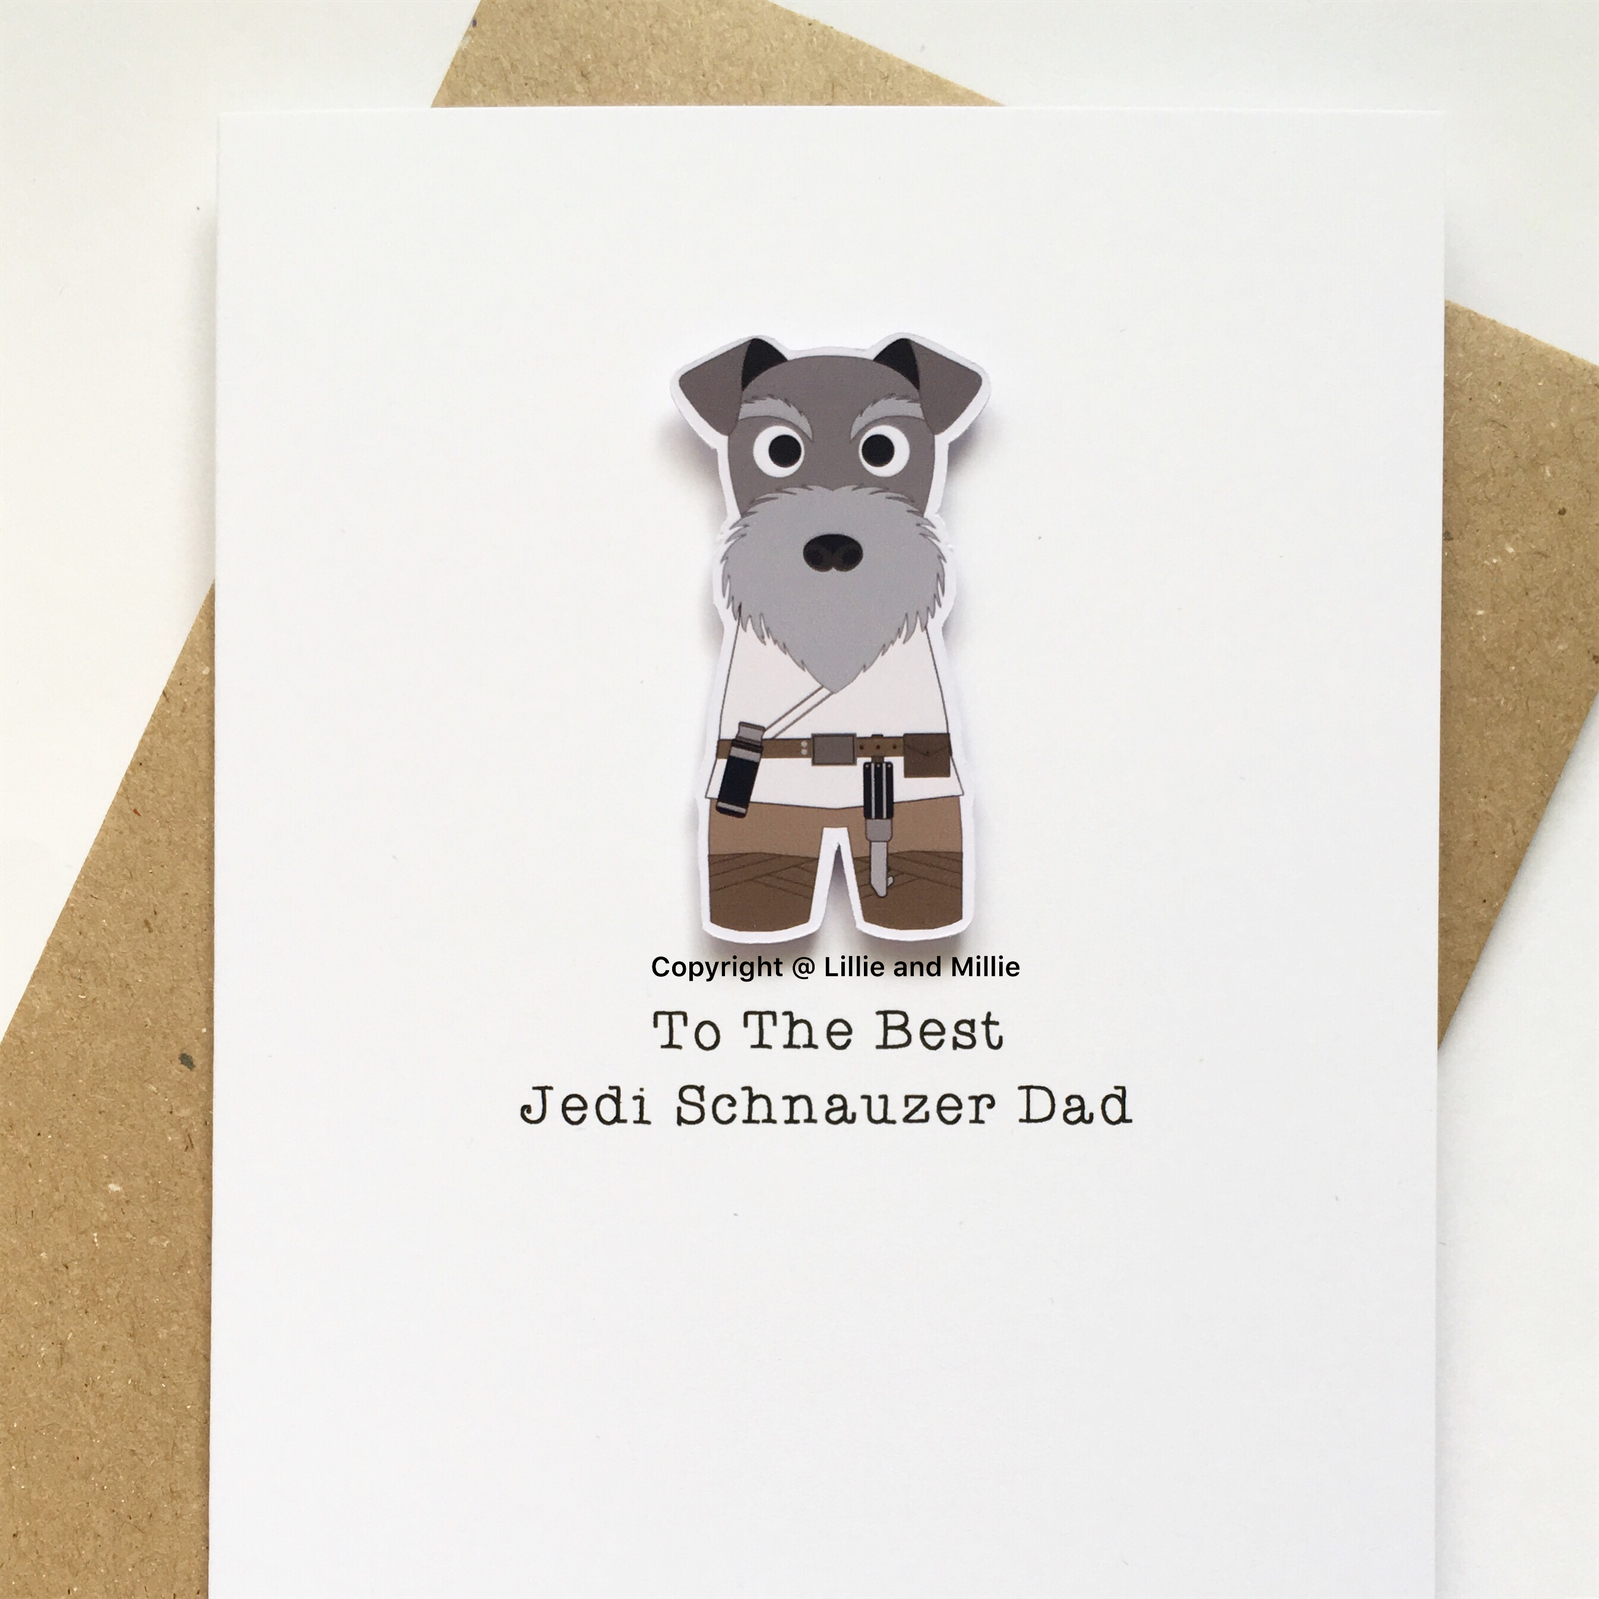 Cute and Cuddly Salt and Pepper Jedi Schnauzer Dad Card